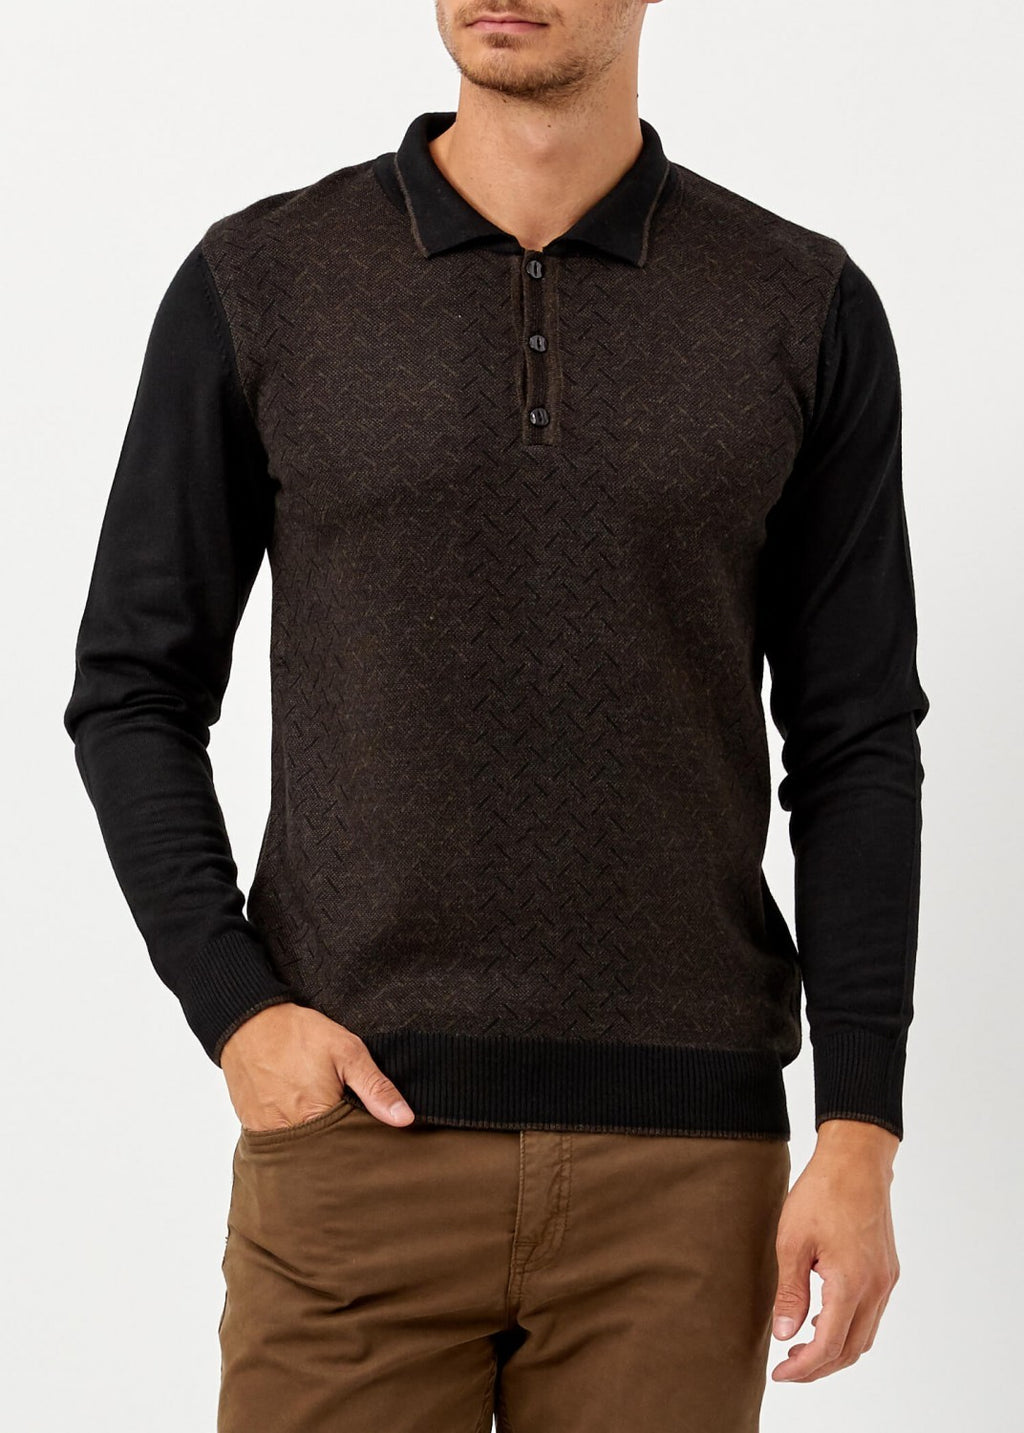 Men's Polo Neck Black Brown Wool Pullover